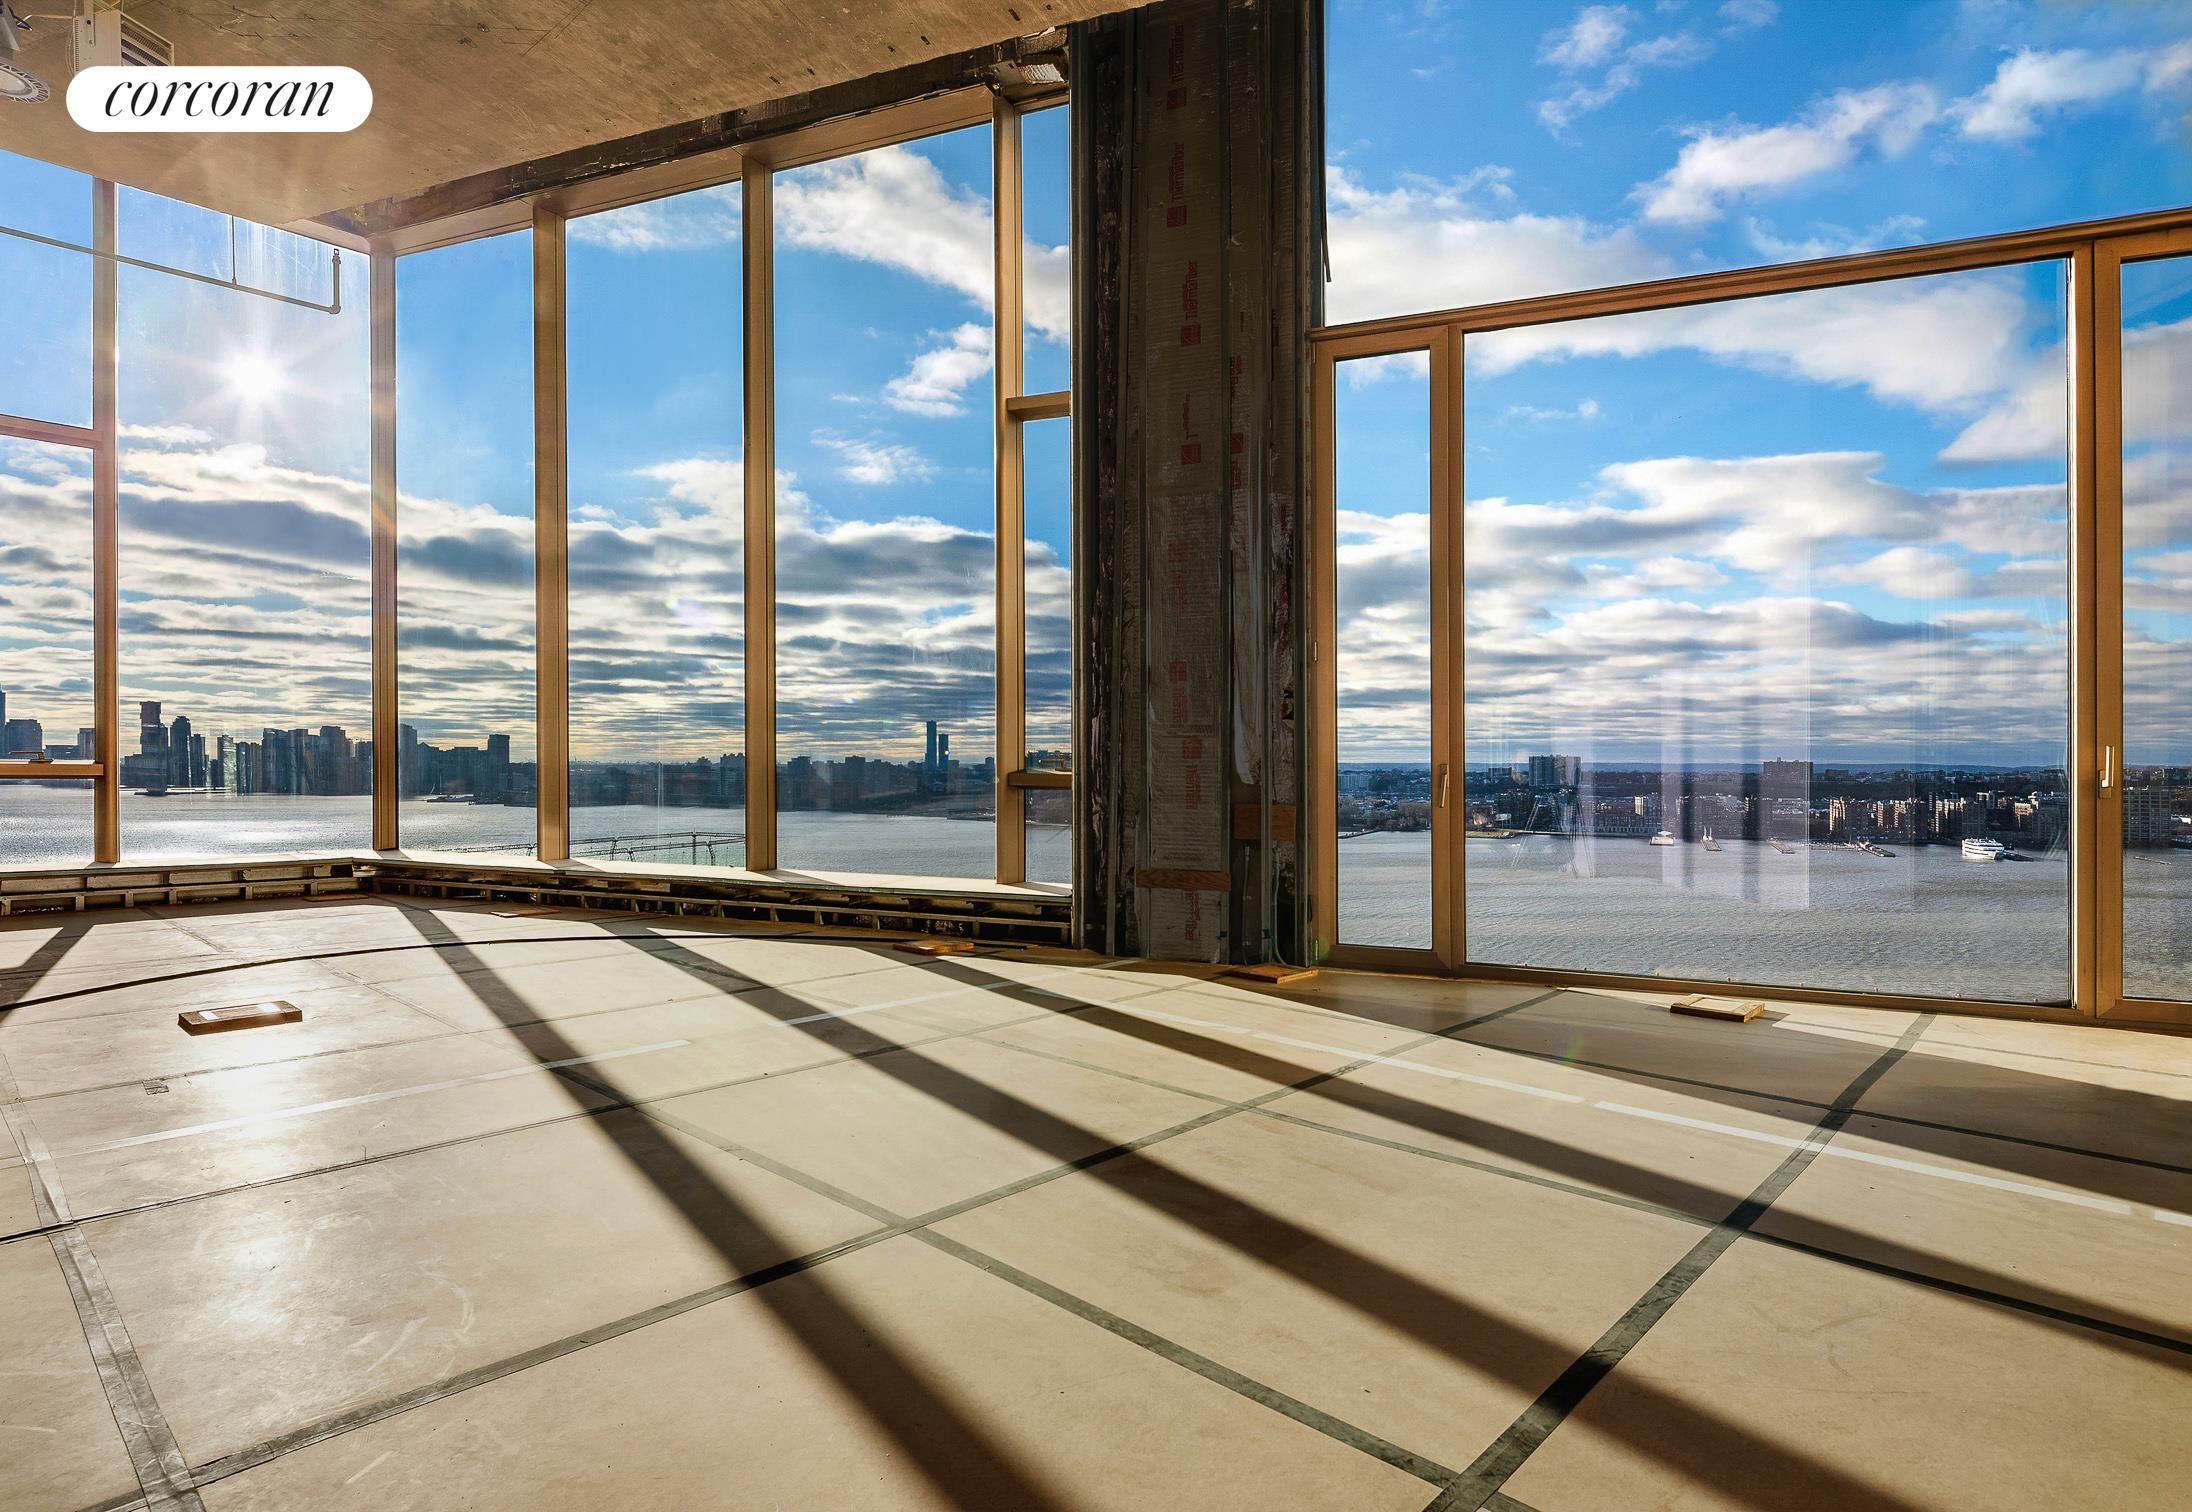 """Exceptional opportunity to conceptualize your very own Chelsea Penthouse with a private rooftop and expansive 360 degree views of the Hudson River, Statue of Liberty, Empire State Building, the George Washington Bridge and the brownstones of Chelsea.  Offered as a """"White Box"""" with multiple detailed floor plans to choose from, one can create anything up to a five-bedroom home atop the renowned 551 West 21st Street. The entertainment-friendly residence features room for expansive living and dining, an eat-in kitchen, a library and den. A double-sided fireplace and separate laundry room can also be accommodated with ease. This incredible home boasts impressive ceiling heights reaching up to 17', and structural slab heights up to 19½'.  In addition to the approximately 6,398 SF interior, there are over 4,579 SF of exterior space. On the main level, two private loggias are accessed through 10' sliding glass doors providing unrivaled views of the city and beyond. The home also includes the building's entire rooftop space and can be exclusively accessed by private elevator or staircase. The unmatched rooftop terrace can be laid out to your design, with a full outdoor kitchen and a sunken 61' private swimming pool (the largest private outdoor pool in New York City); there is also capability for a jacuzzi on the eastern perimeter. An assigned parking spot is included in the sale.  Built in 2015 by Architect Foster + Partners and close to Chelsea Piers, The High Line and Meatpacking district, 551 West 21st Street features 24-hour doorman, concierge, valet service, porter and live in super, fitness center with gym, yoga room, sauna and steam, residents lounge, playroom, media room bike storage and porte cochere."""